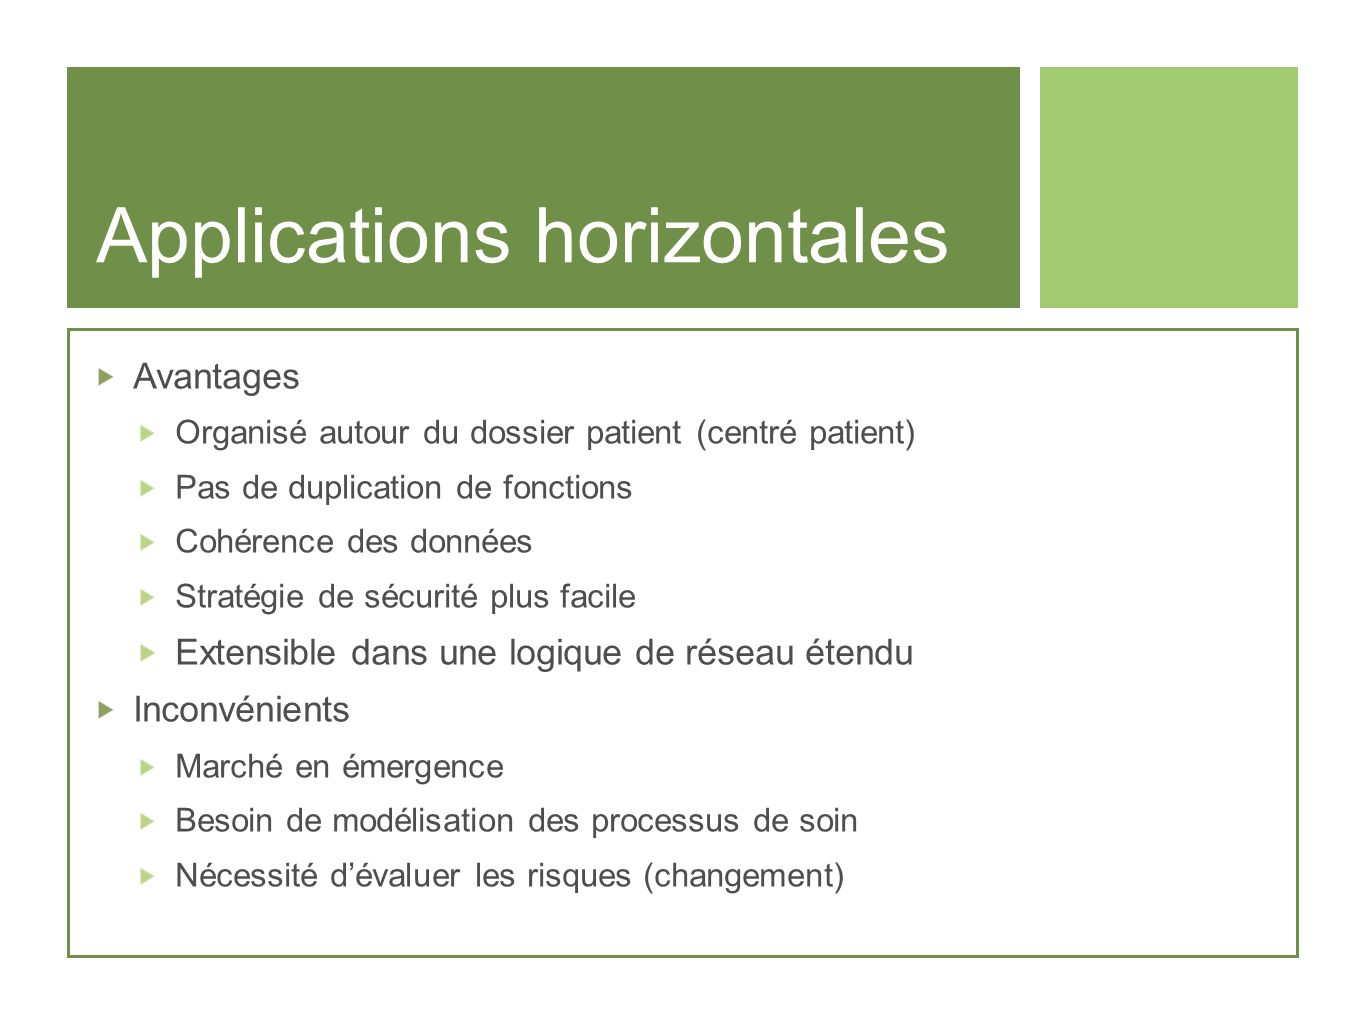 Applications horizontales